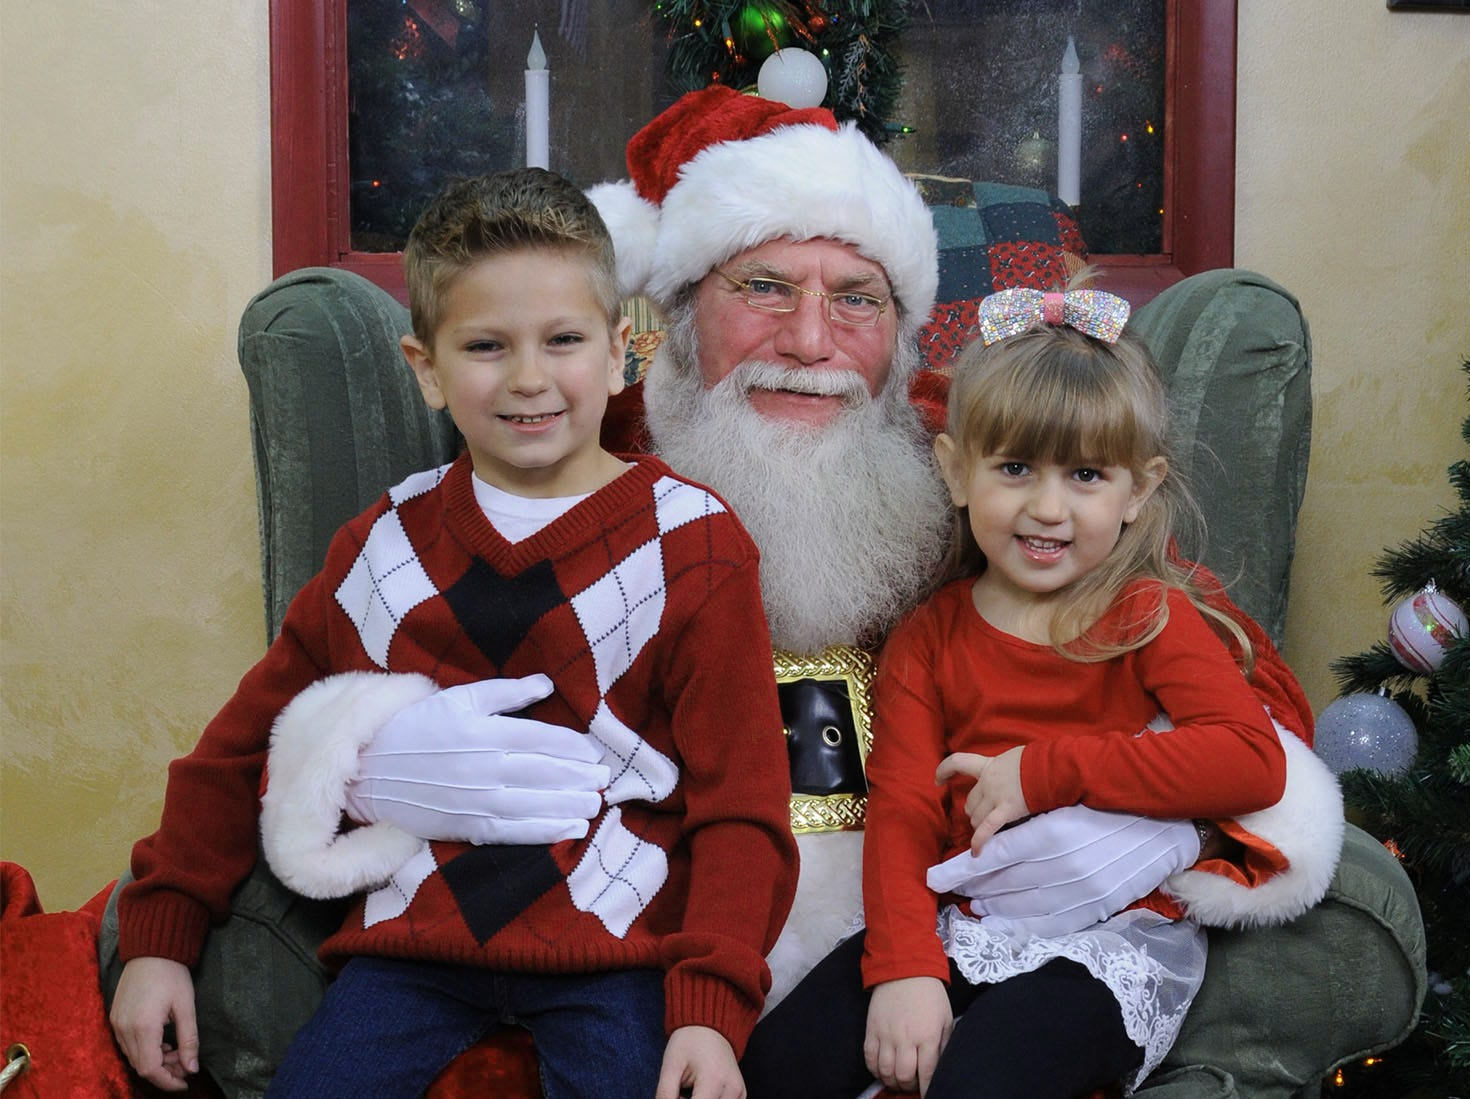 Santa poses with children at Chambersburg Mall in a photo captured by Jarrell Photography Studios.